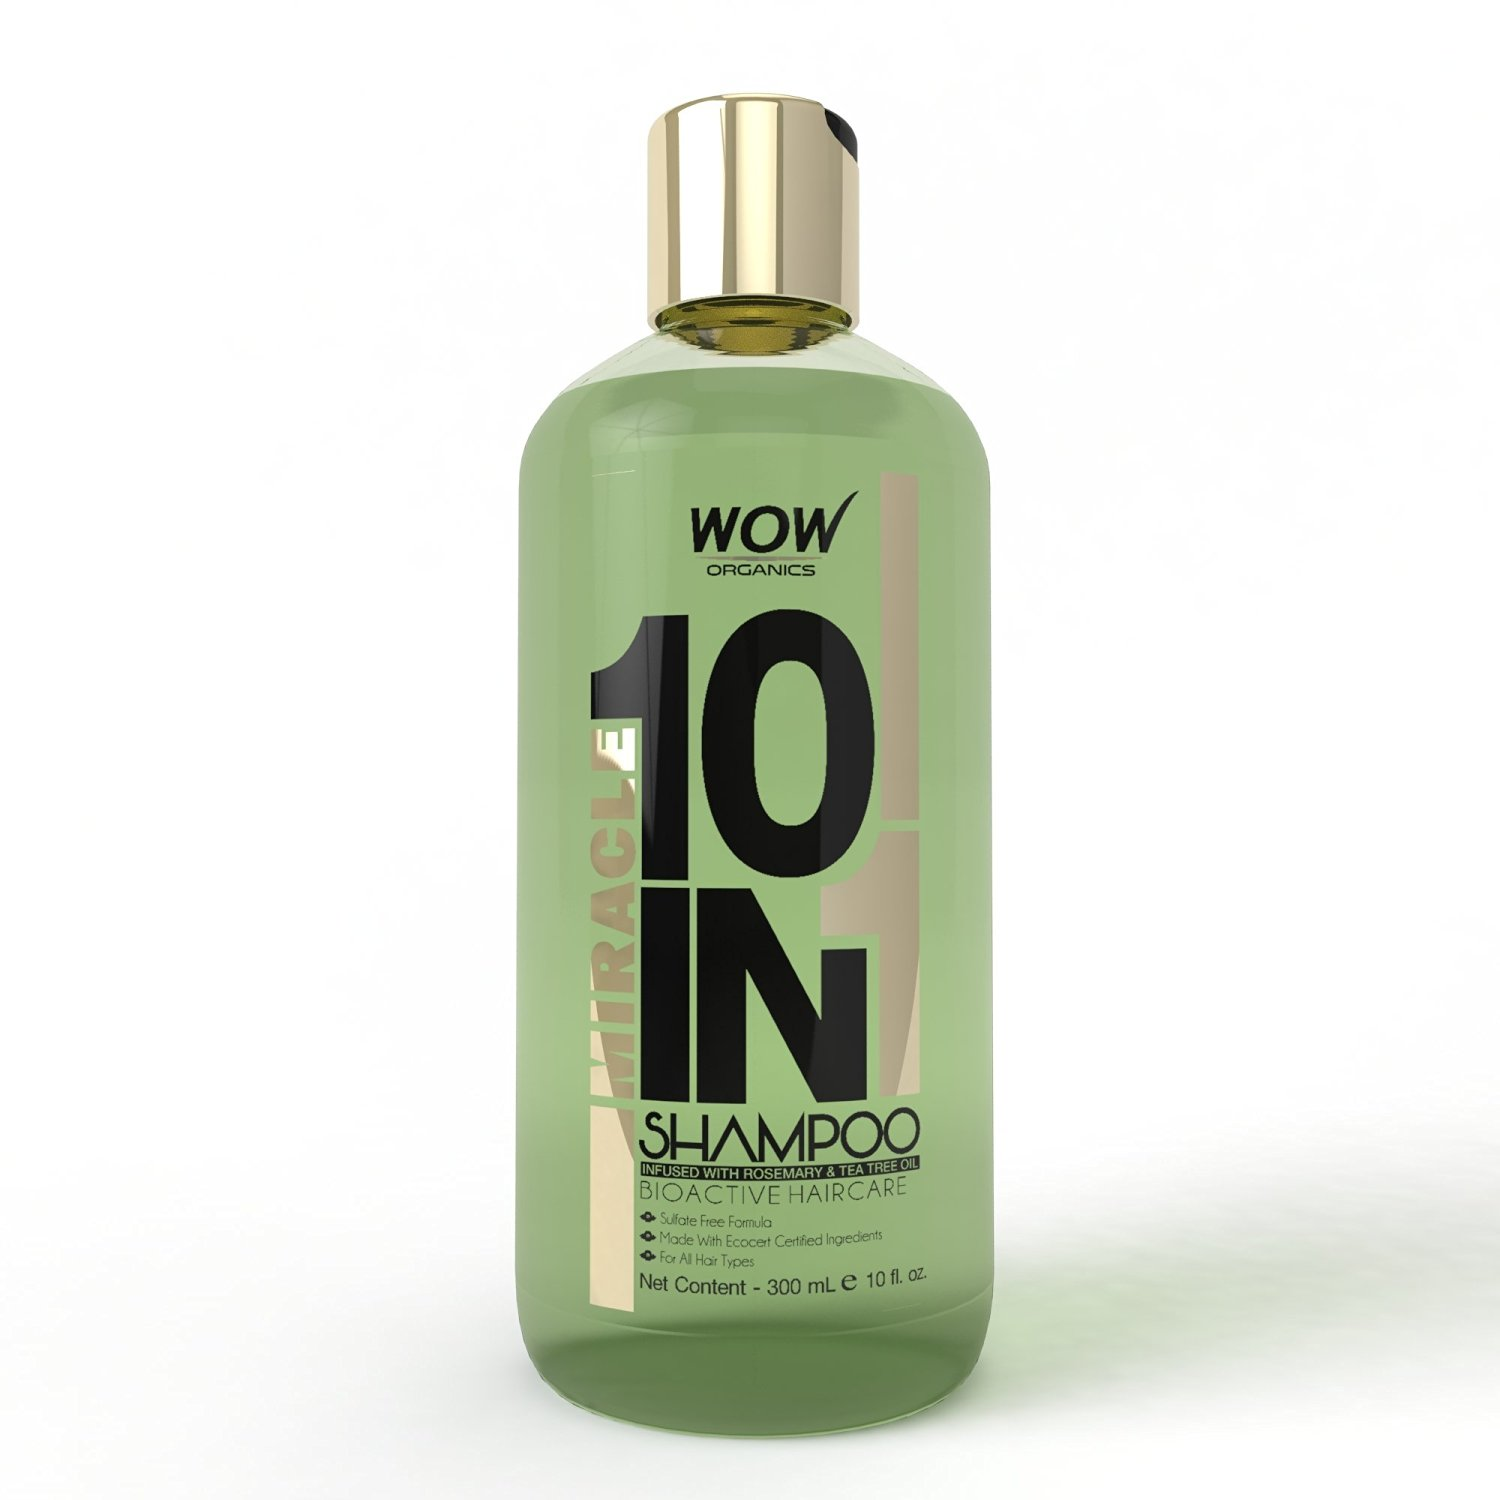 WOW Organics Miracle 10 in 1 Shampoo Image